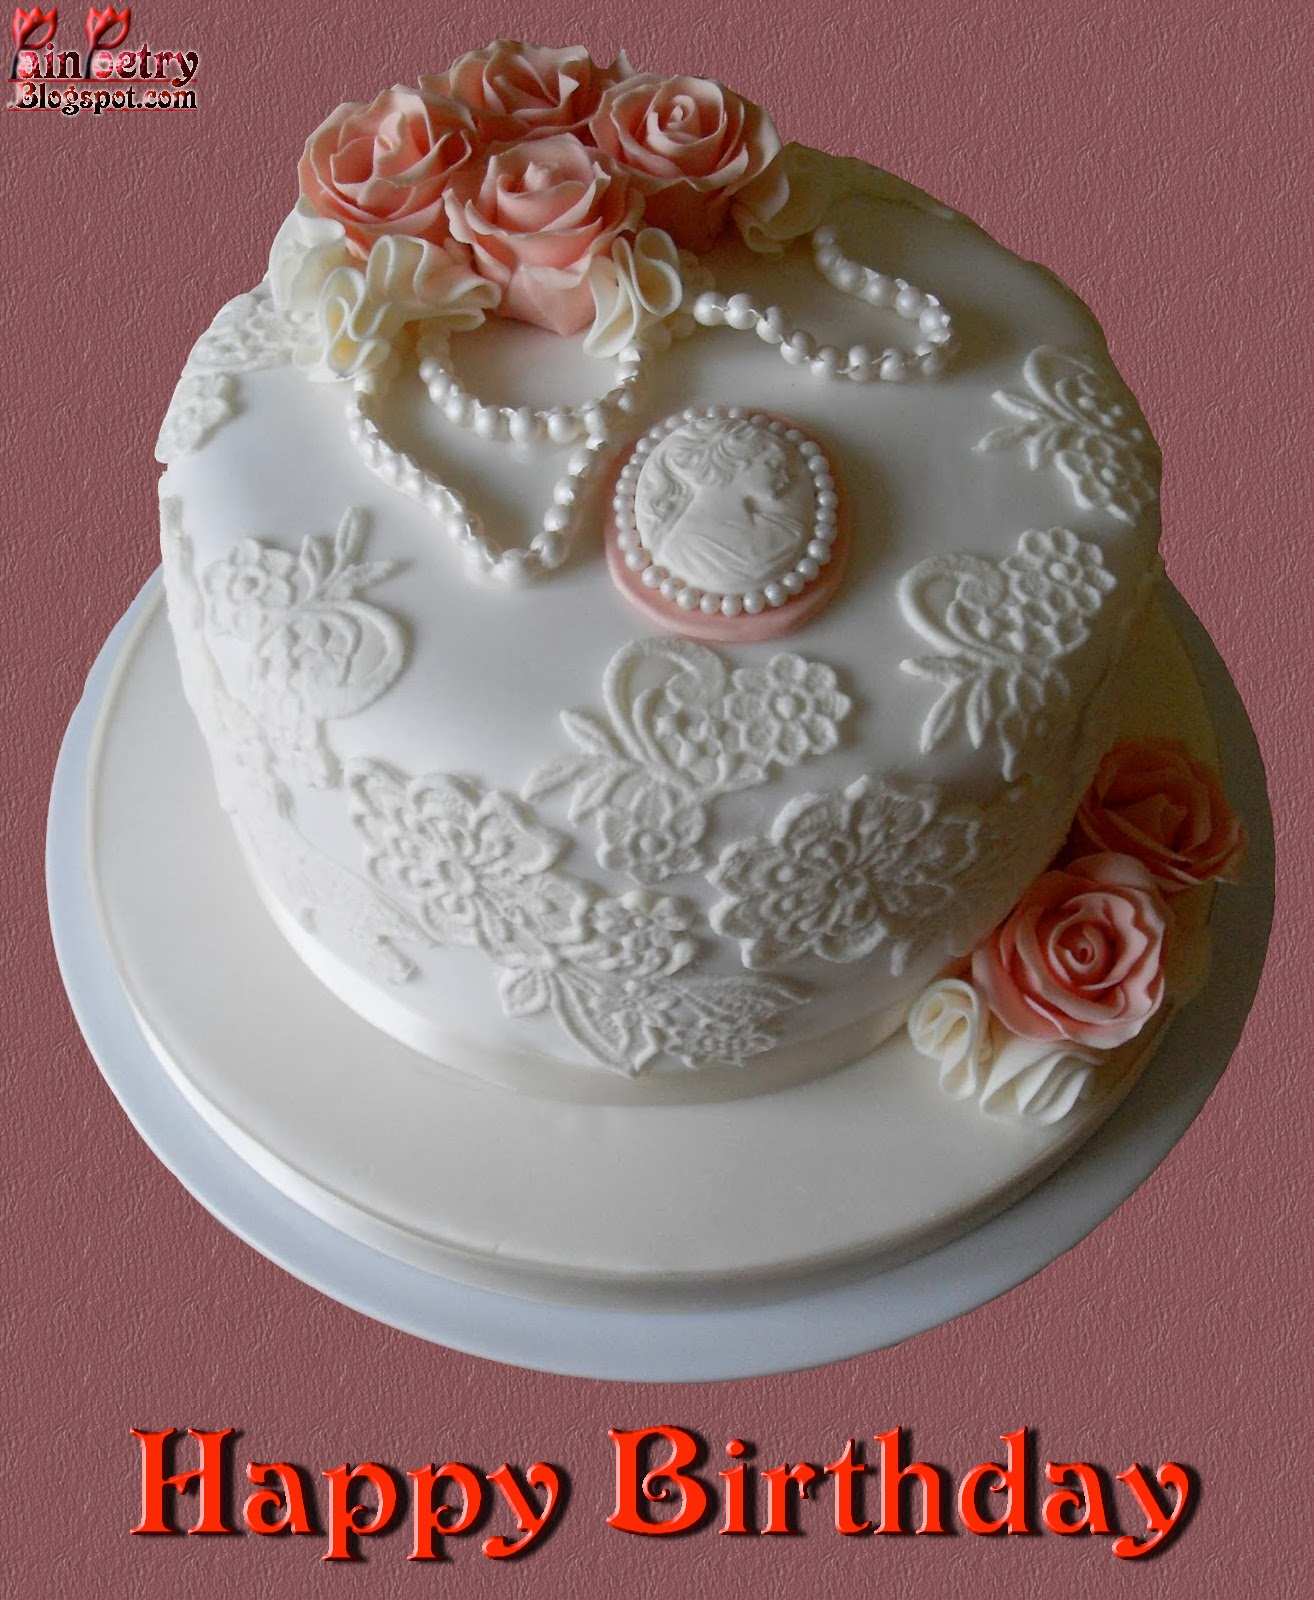 Happy-Birthday-With-Cream-Cake-Image-HD